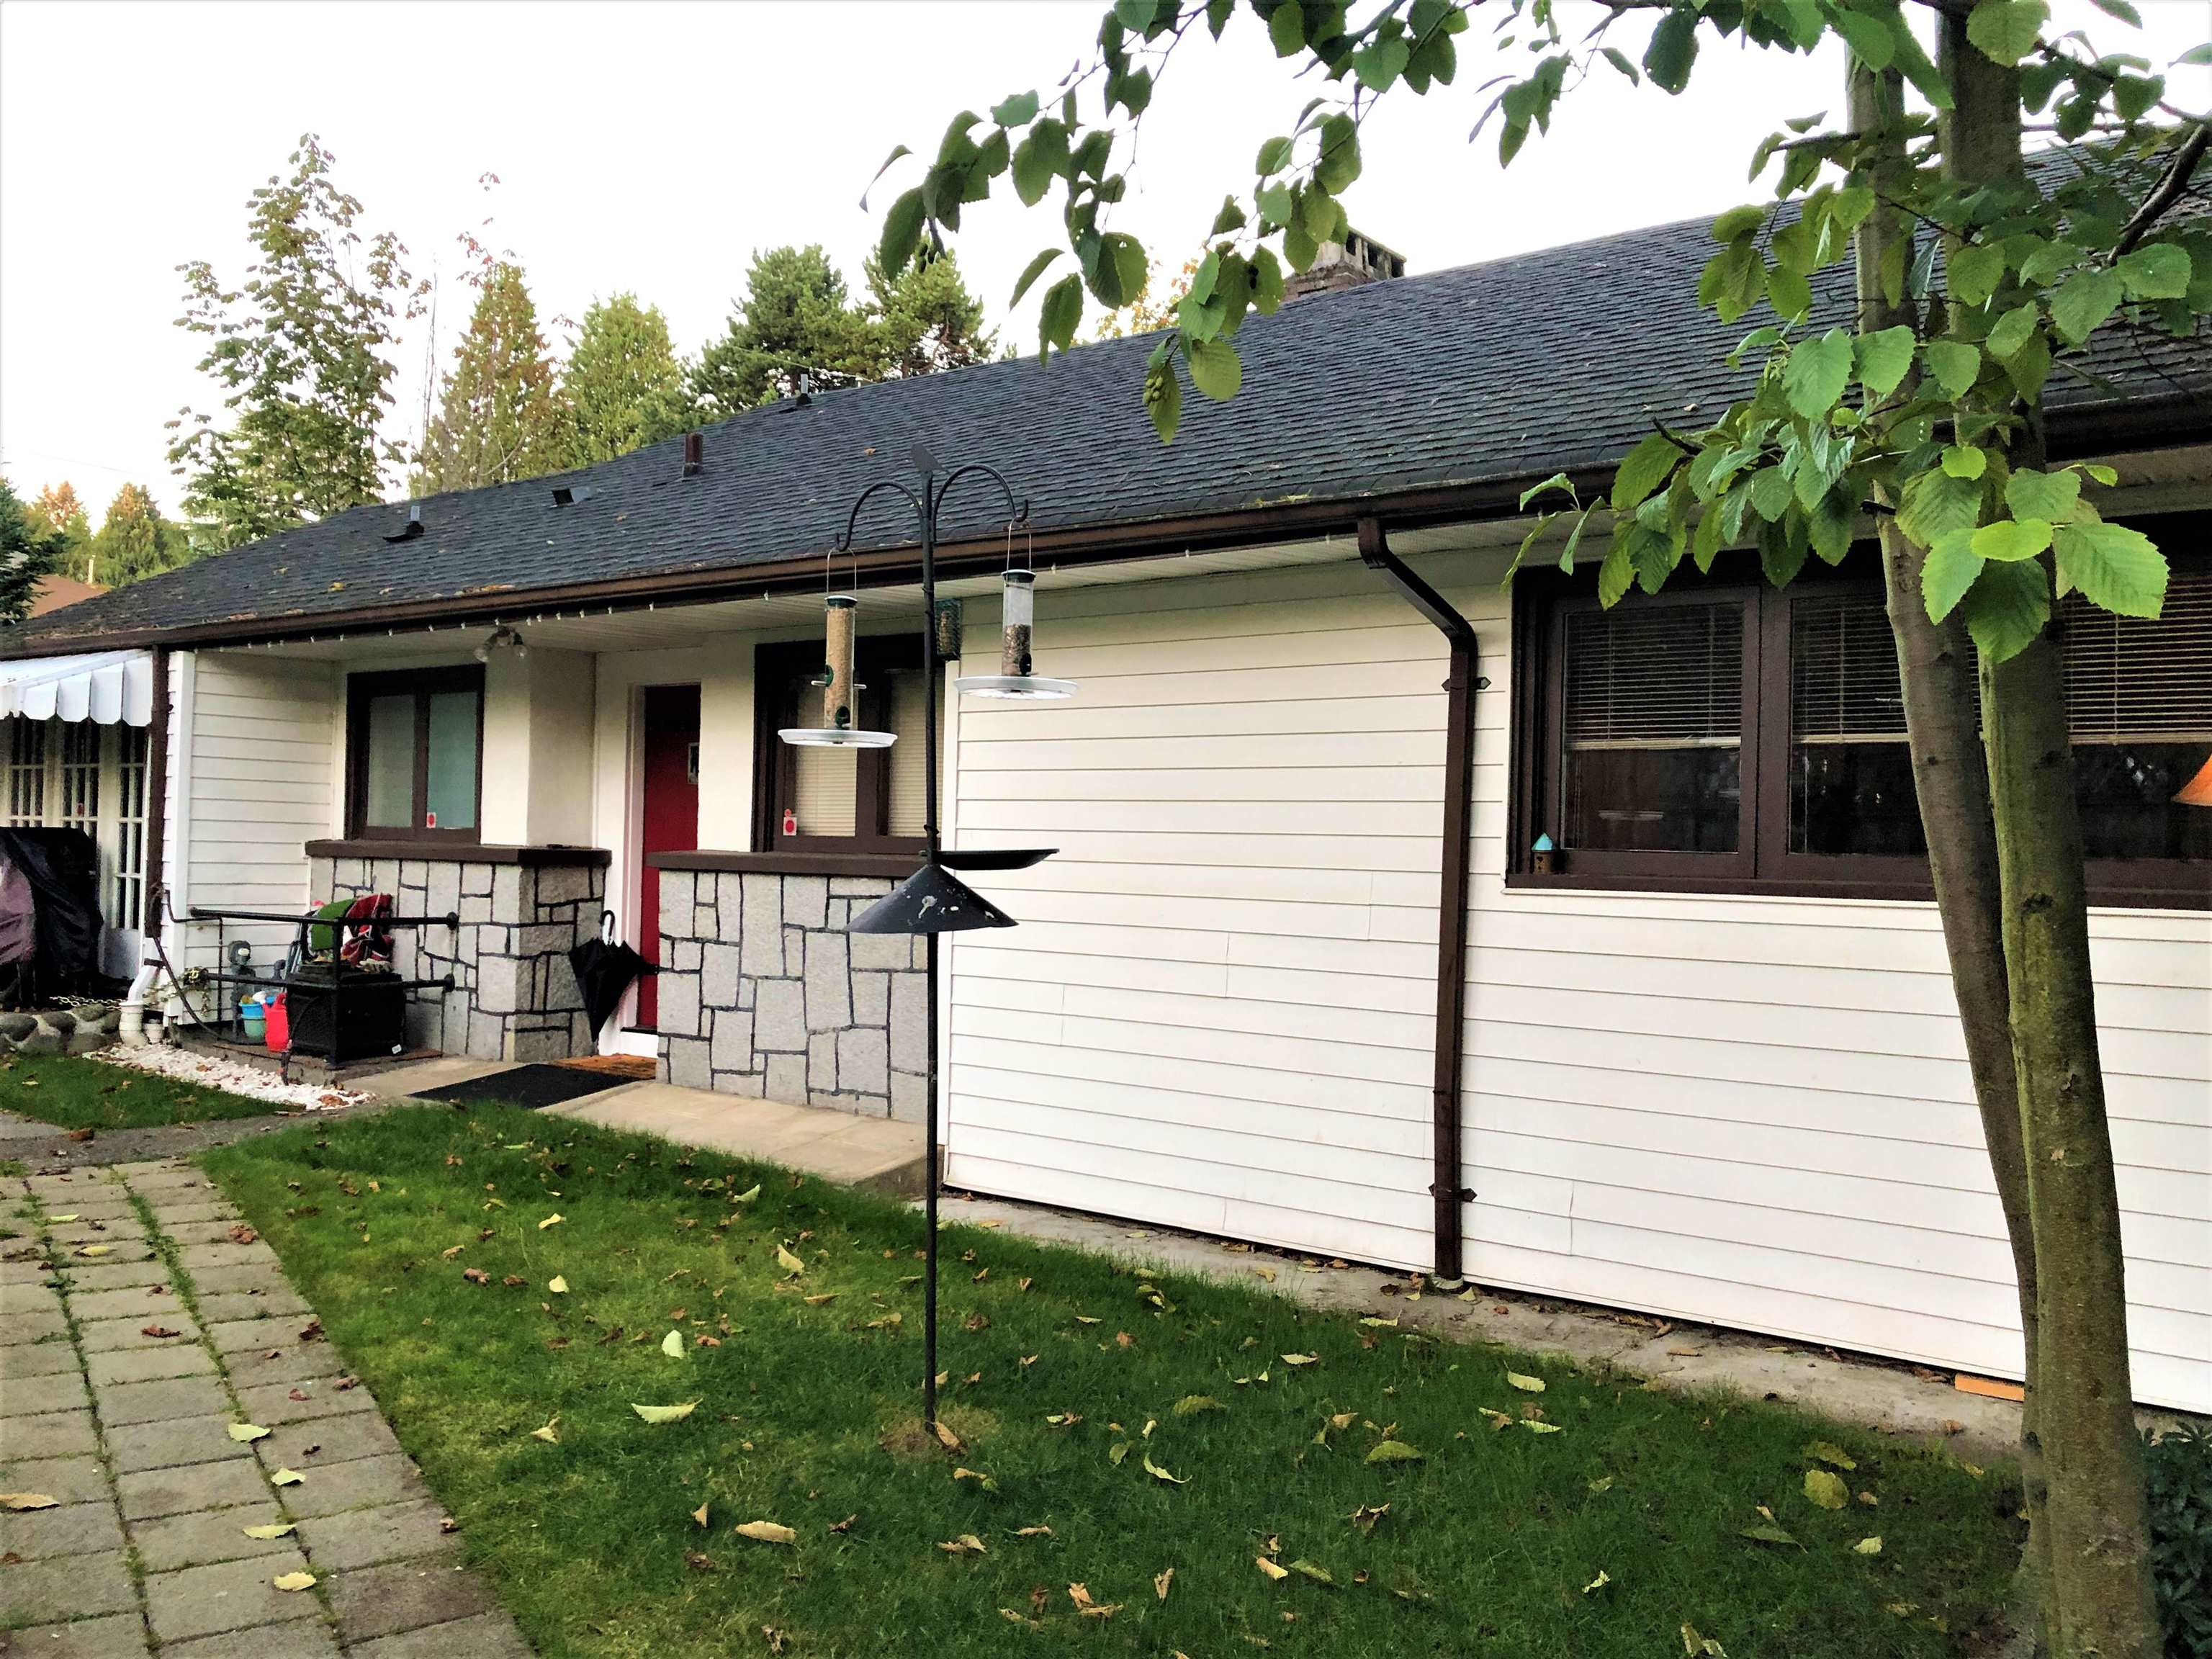 790 15TH STREET - Ambleside House/Single Family for sale, 4 Bedrooms (R2621731) - #1